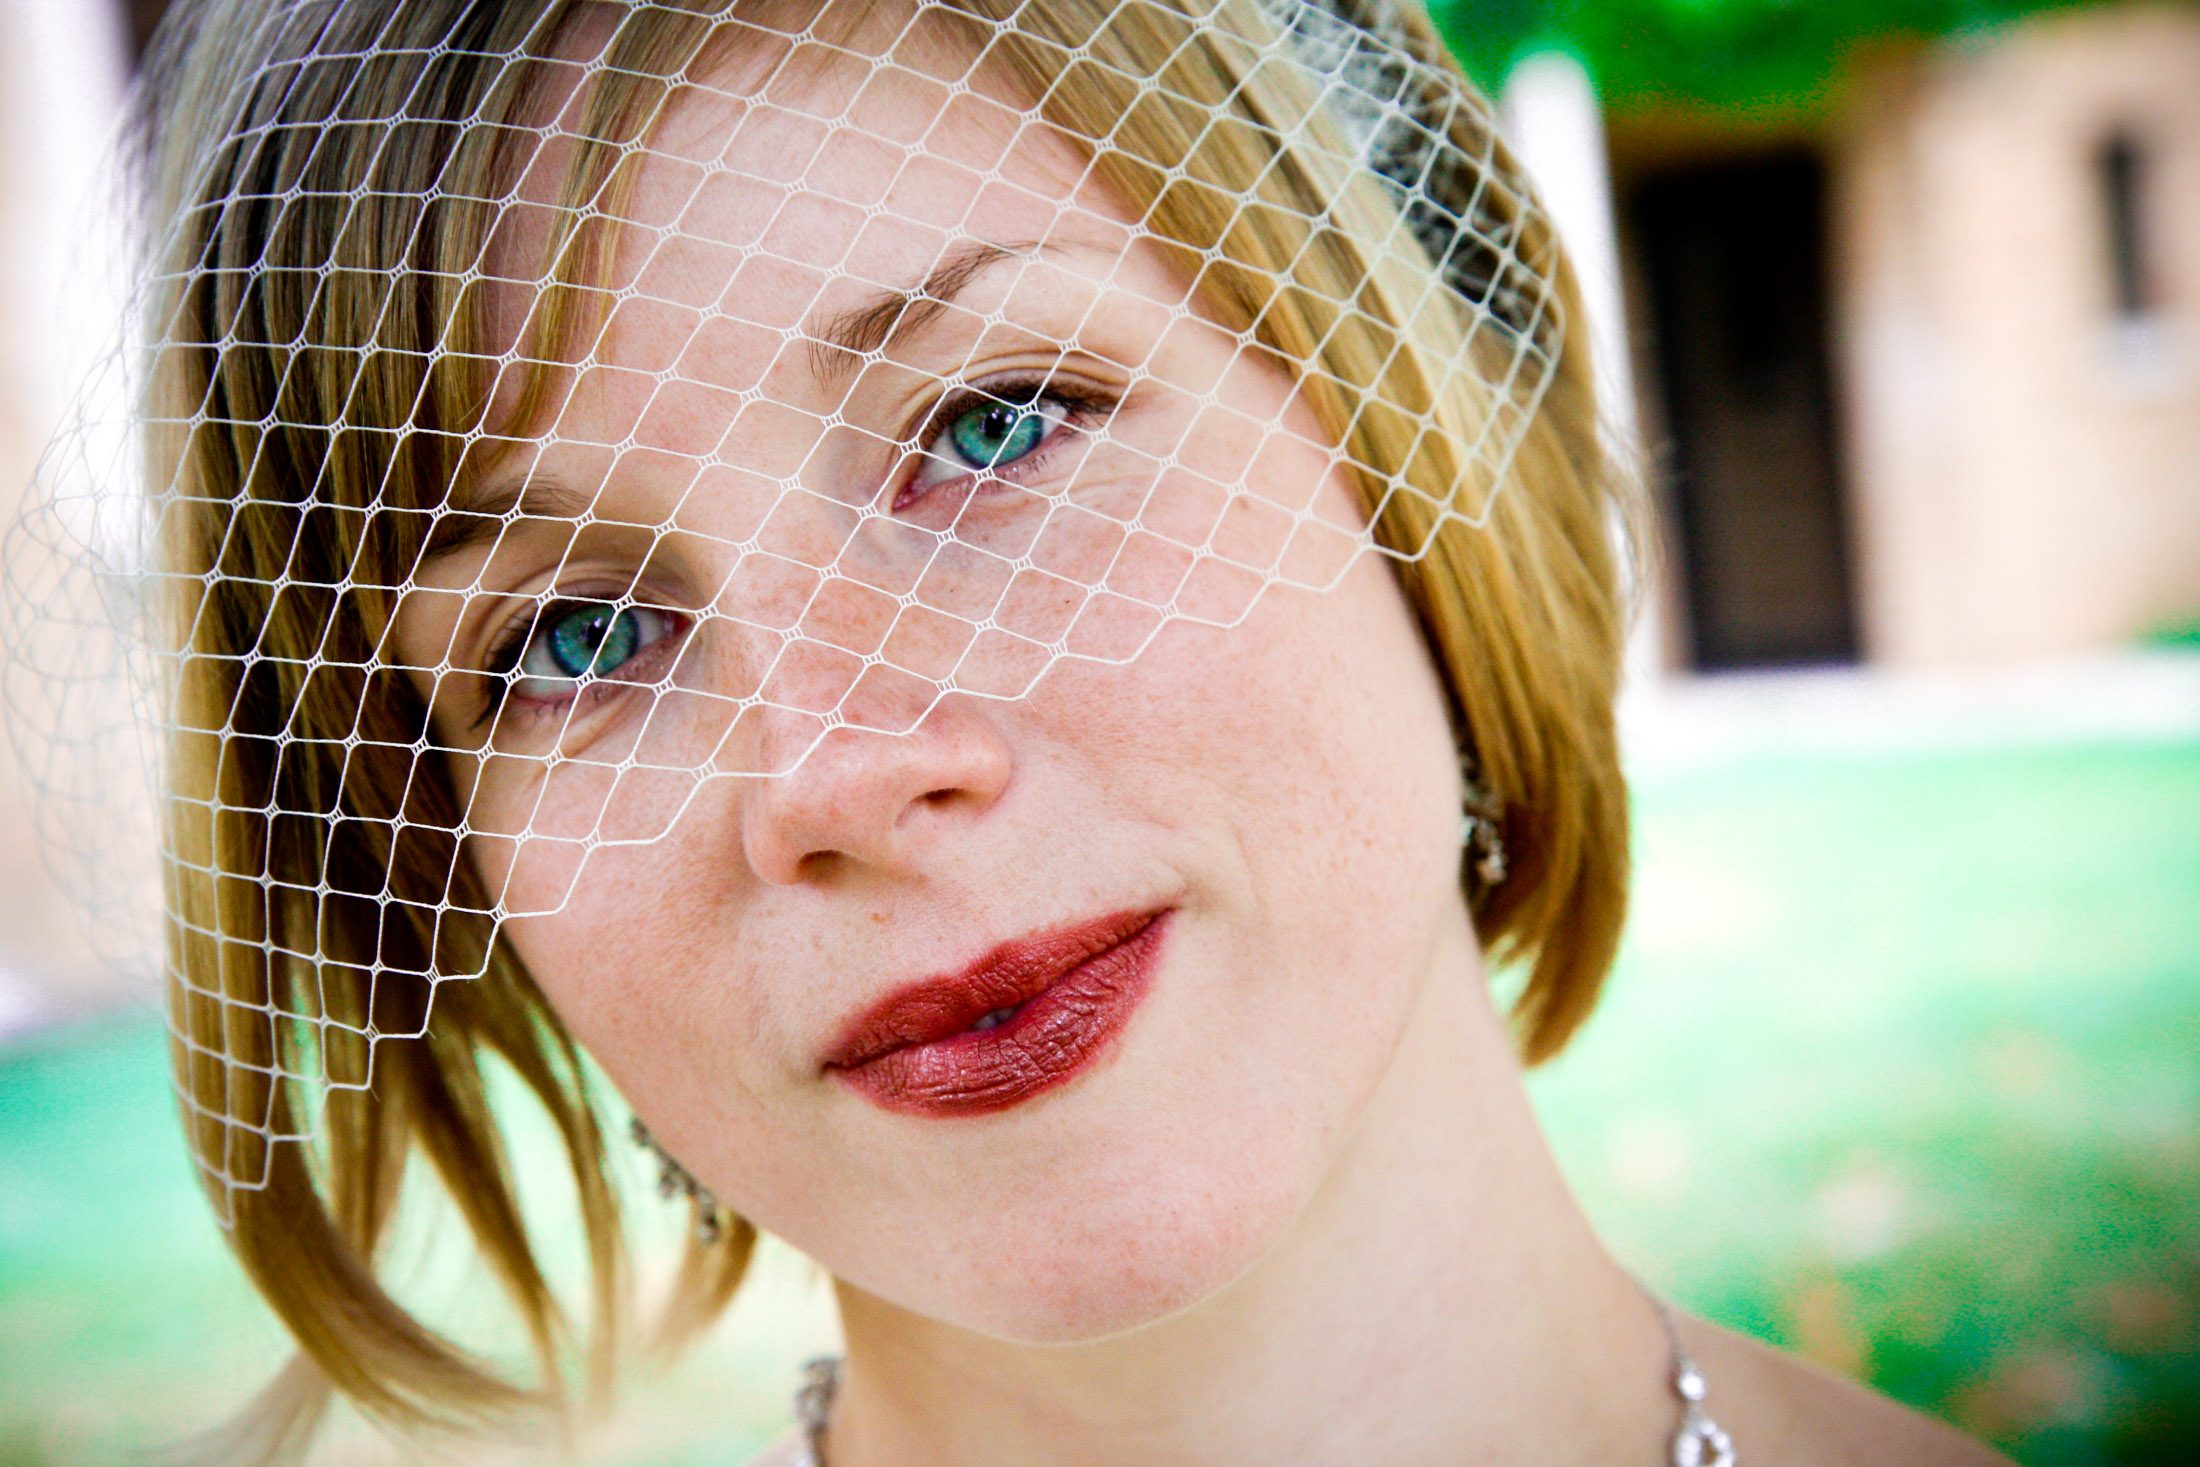 bride-red-lipstick-wedding-photographer-adam-shea-photography-green bay-appleton-neenah-oshkosh-fond-du-lac-wisconsin-photos